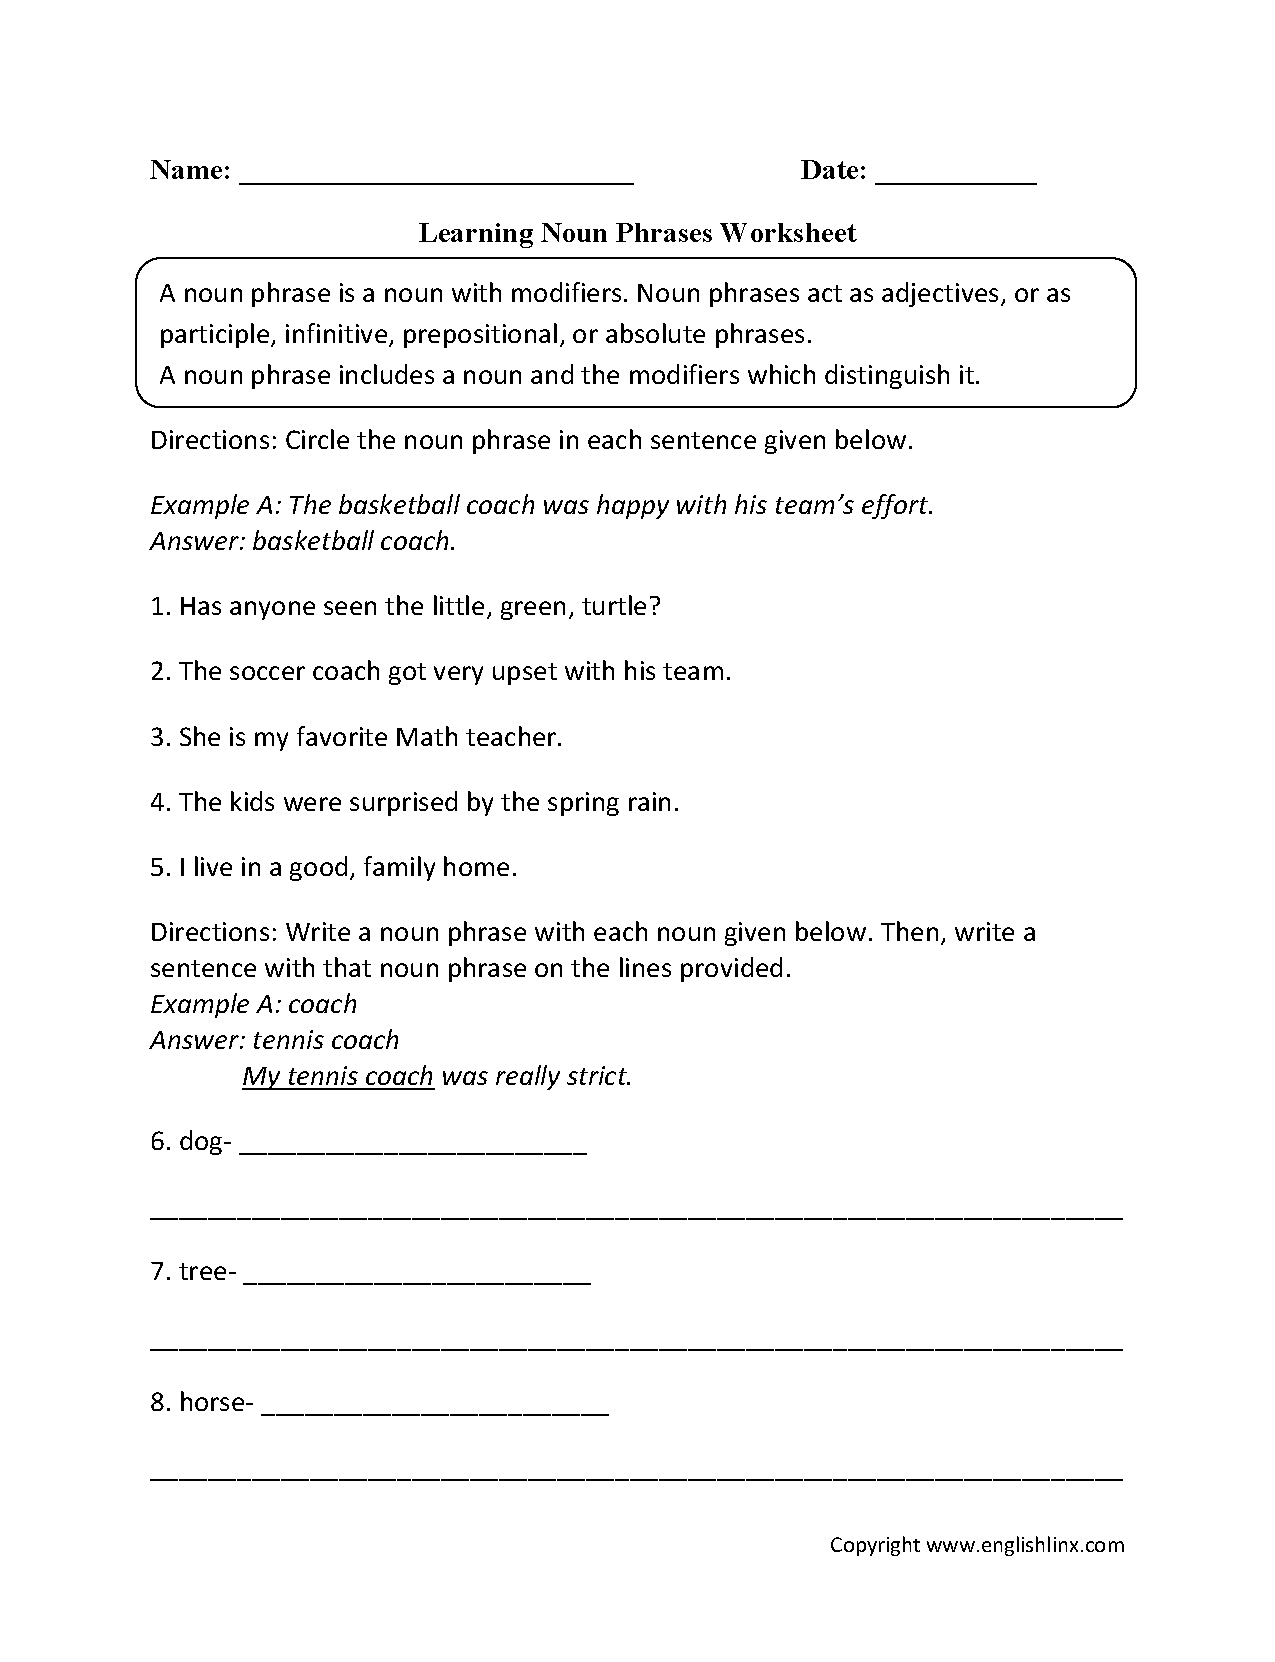 Learning Noun Phrases Worksheets